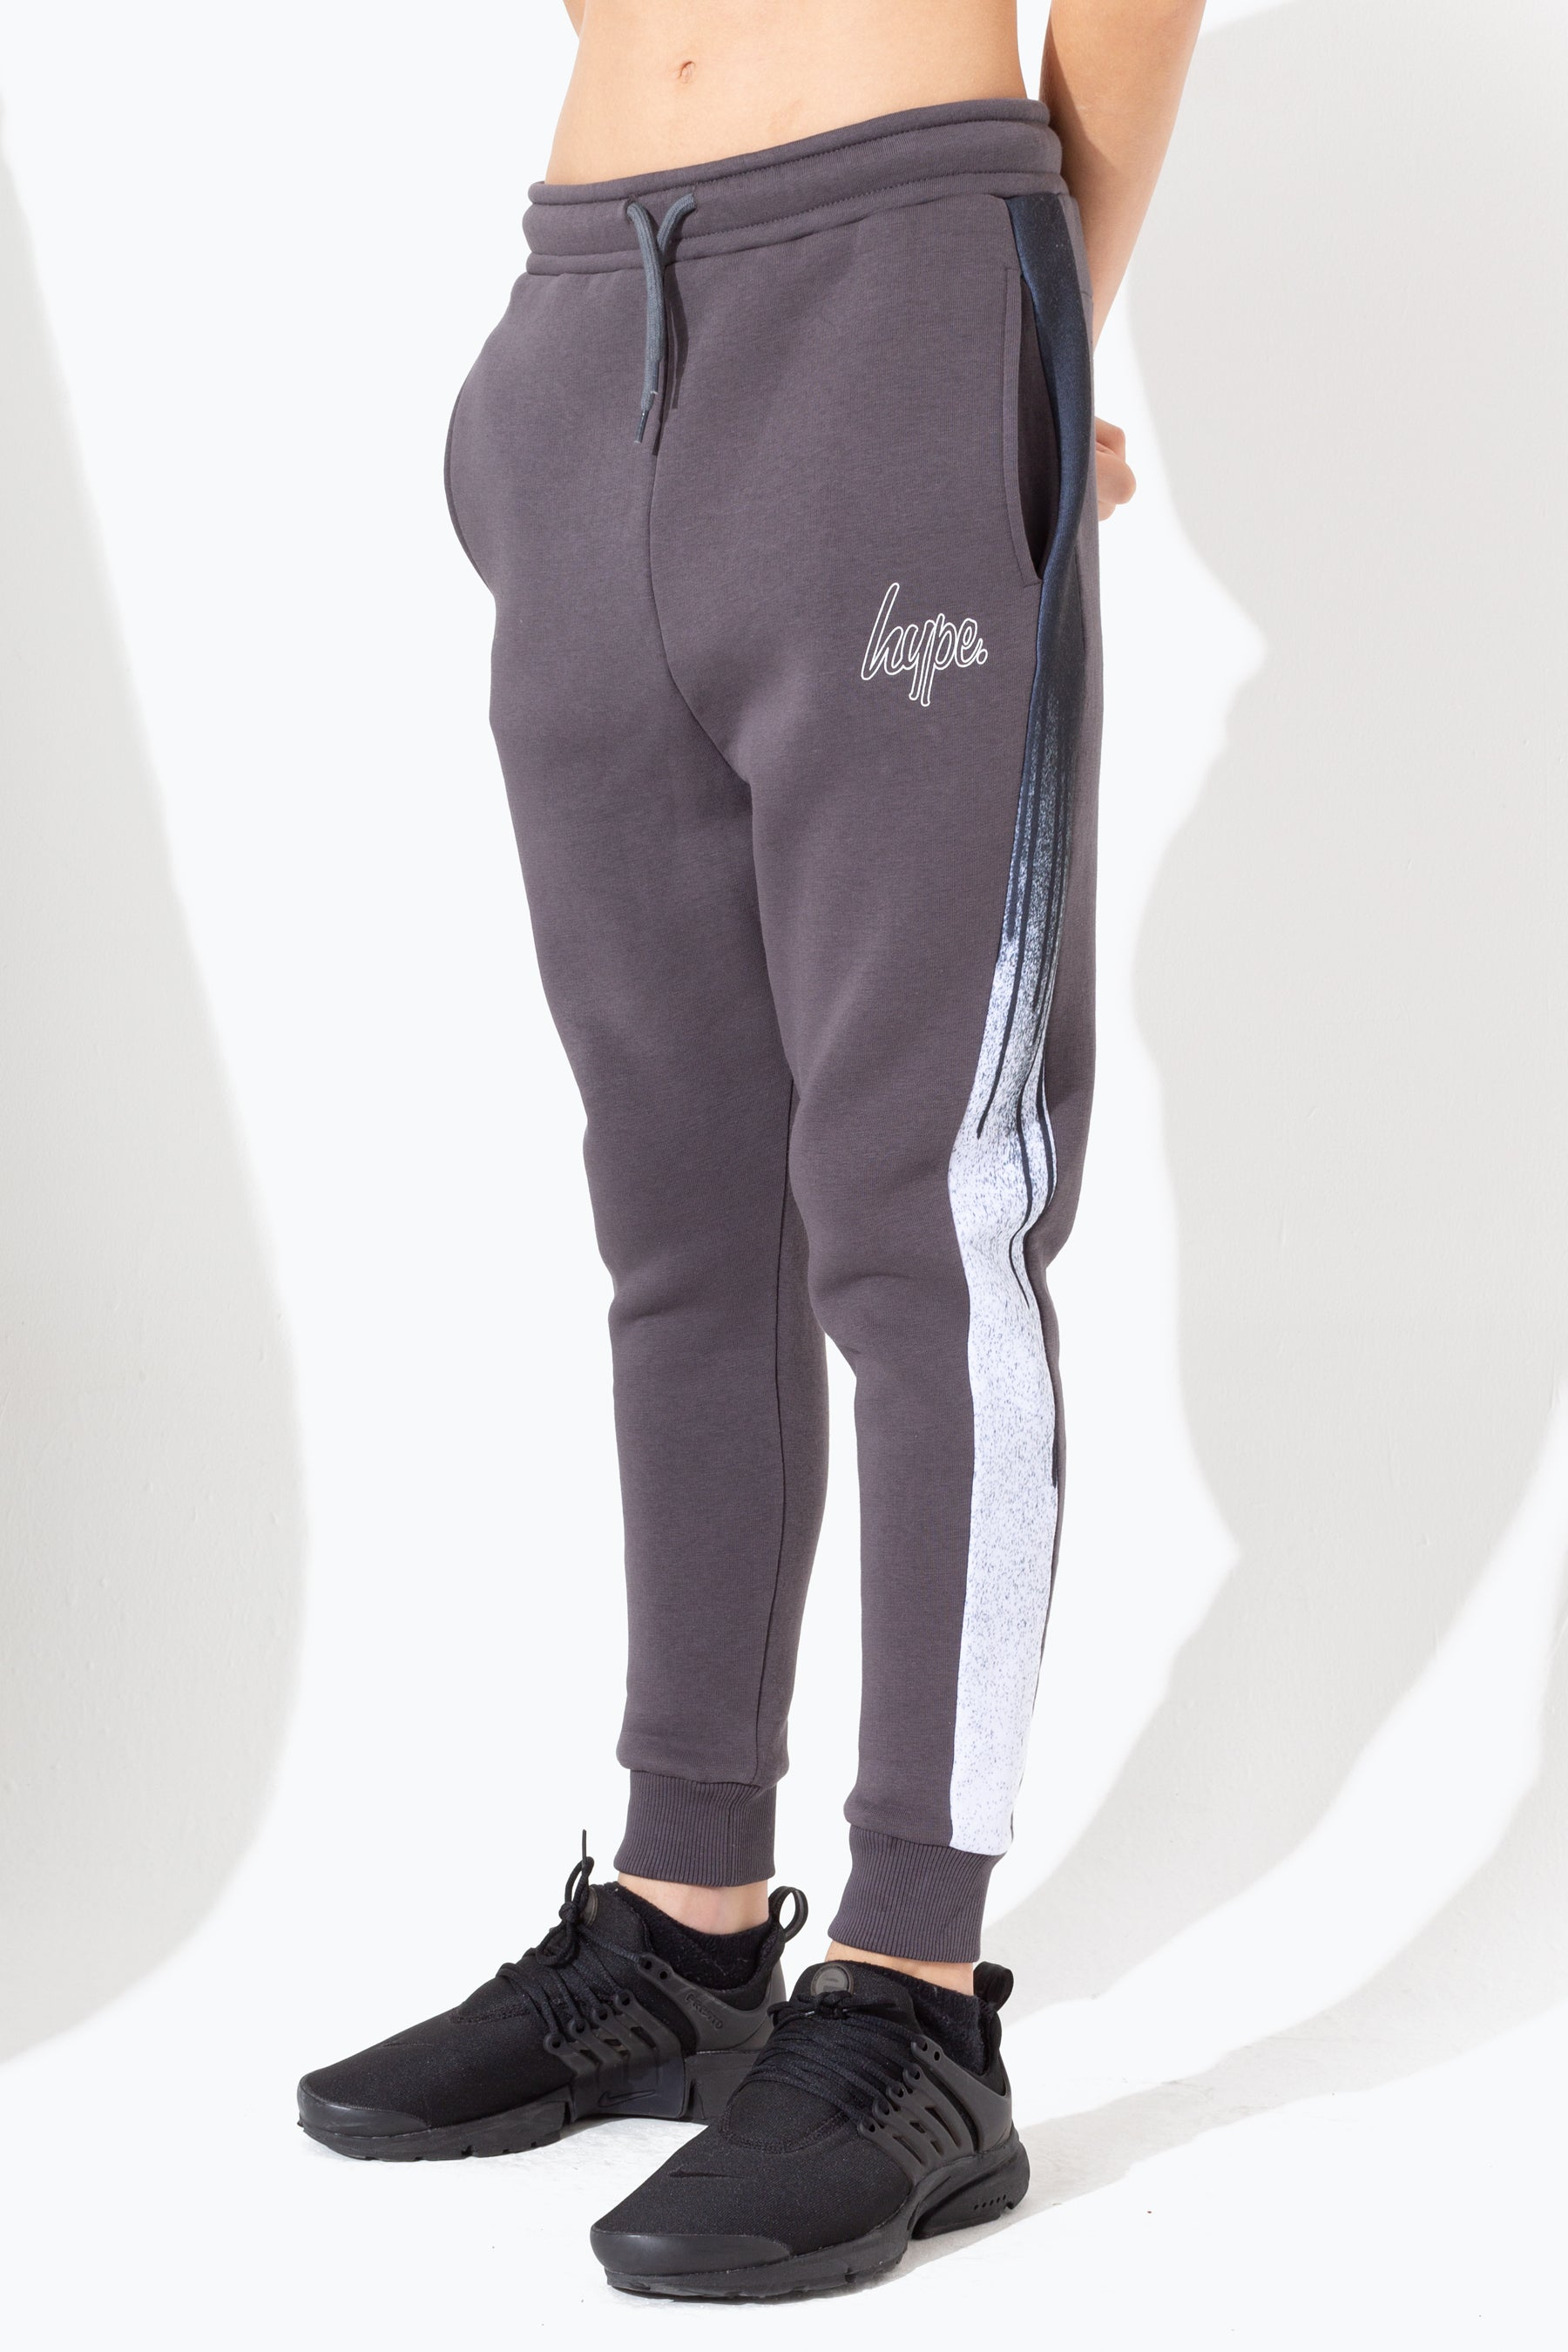 Hype Charcoal Drip Panelled Kids Joggers | Size 14Y